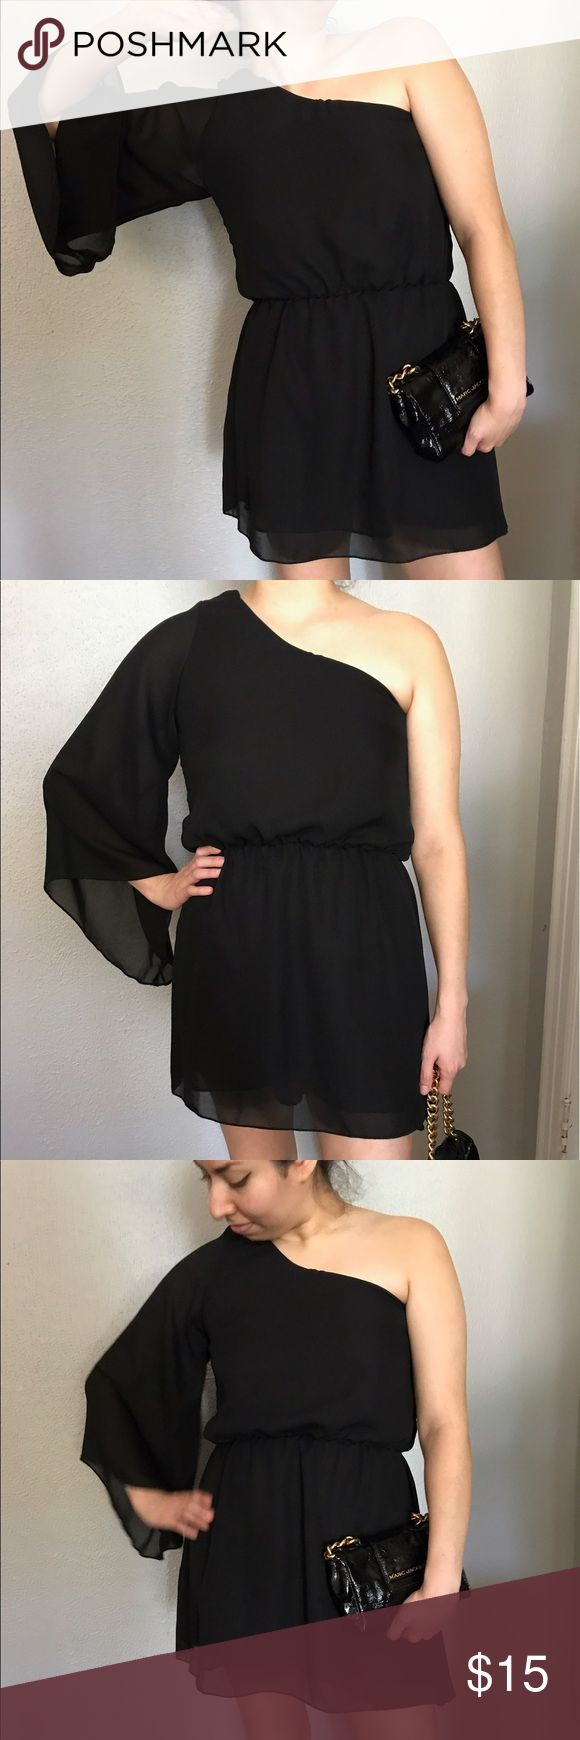 """One shoulder bell sleeve dress Black chiffon bell sleeve dress. I bought this dress at TJ Maxx and it's a little small on me now. I'm 5'2"""" for reference. Will post more pictures with measurements soon! Marc Jacobs bag modeled is for sale in my closet :) TRAMP Dresses One Shoulder"""